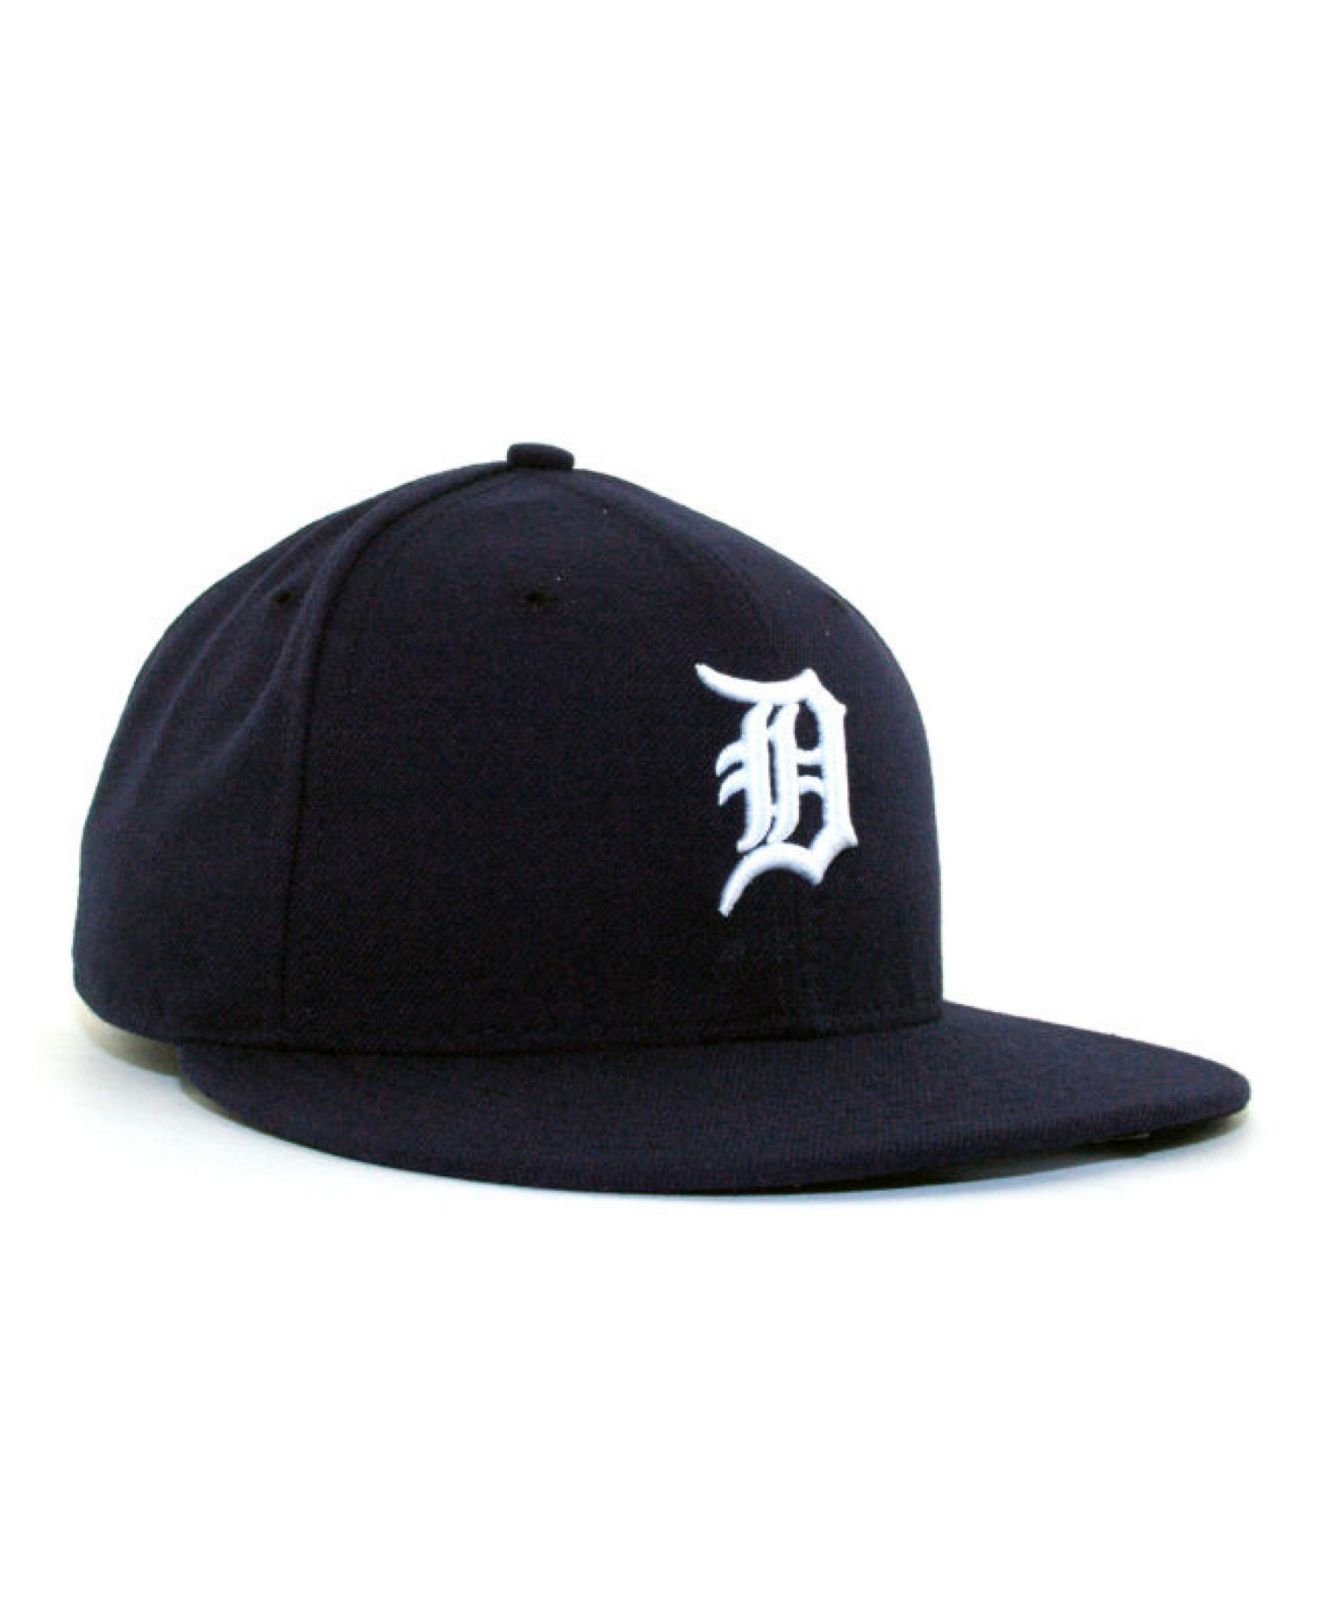 how to watch detroit tigers without cable